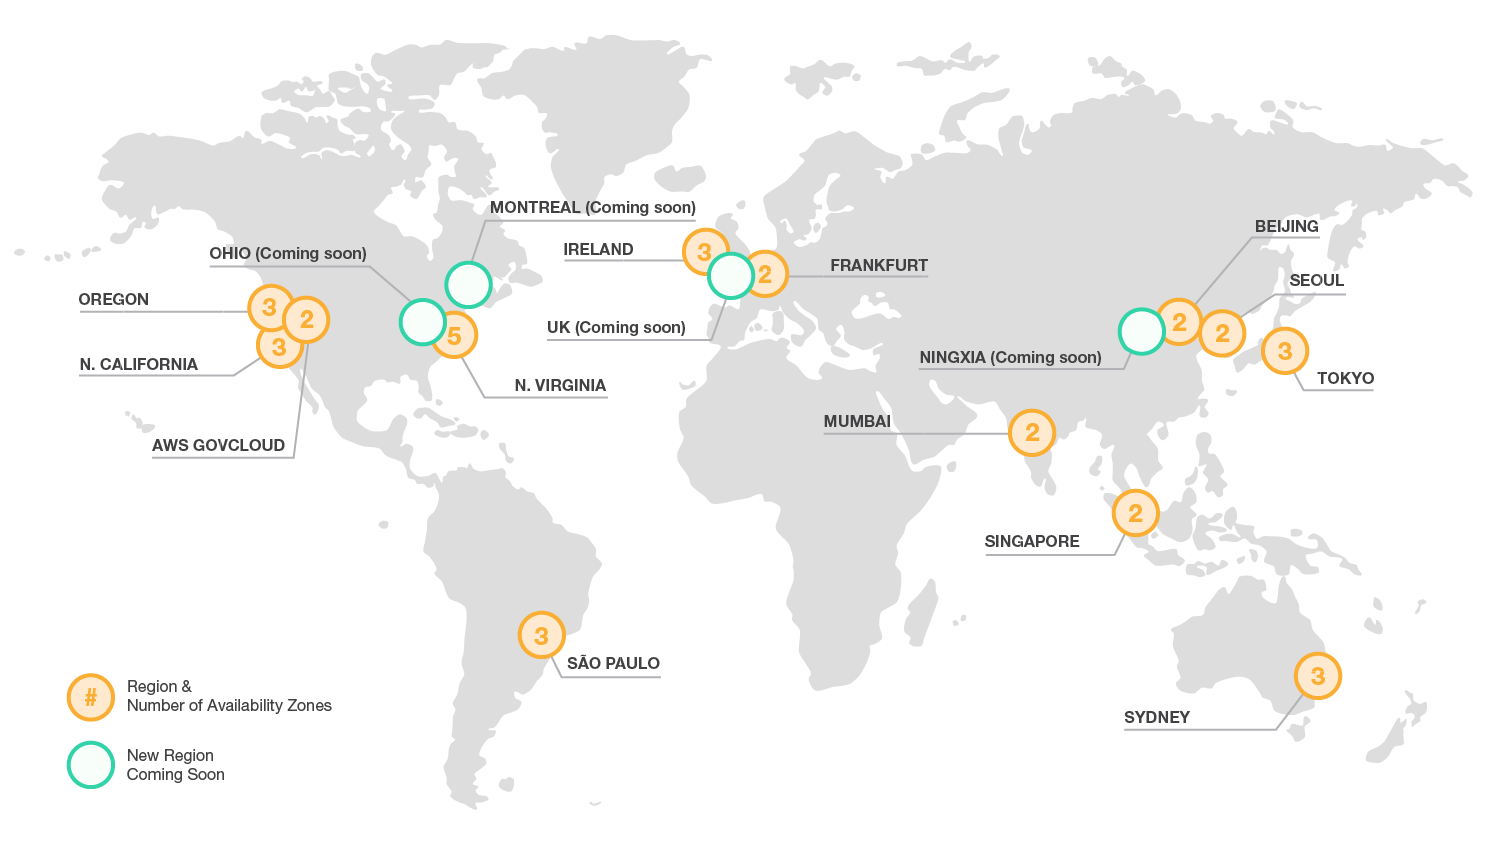 AWS Global Infrastructure  The AWS Cloud operates 35 Availability Zones within 13 geographic Regions around the world, with 9 more Availability Zones and 4 more Regions coming online throughout the next year.